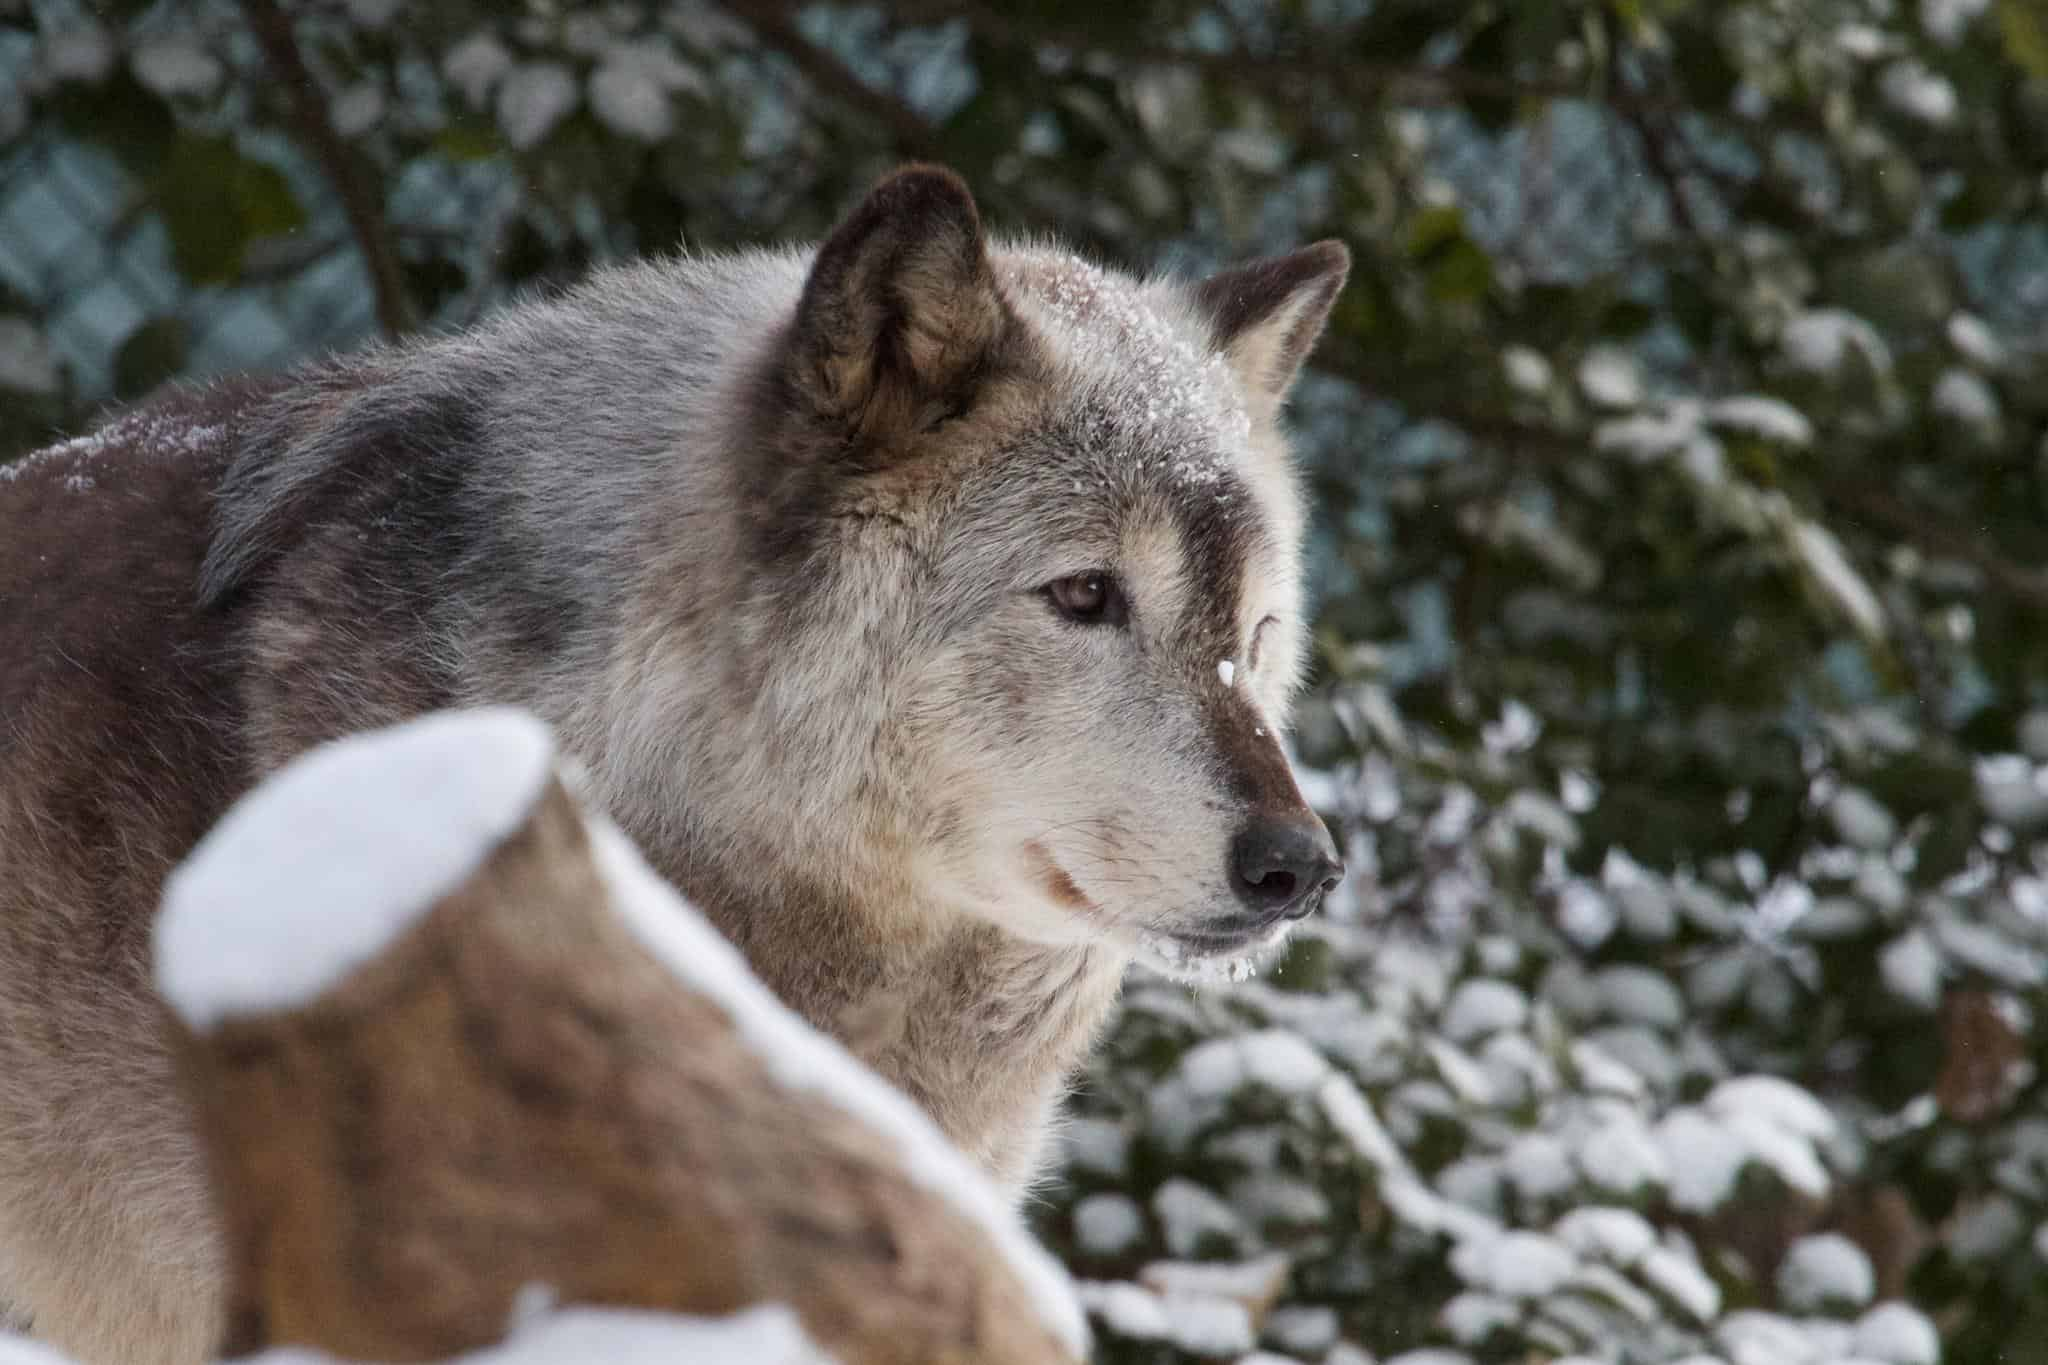 wolf essay Below is an essay on arctic wolf from anti essays, your source for research papers, essays, and term paper examples artic wolf the arctic wolf is a mammal which part of the canidae family who are carnivores.